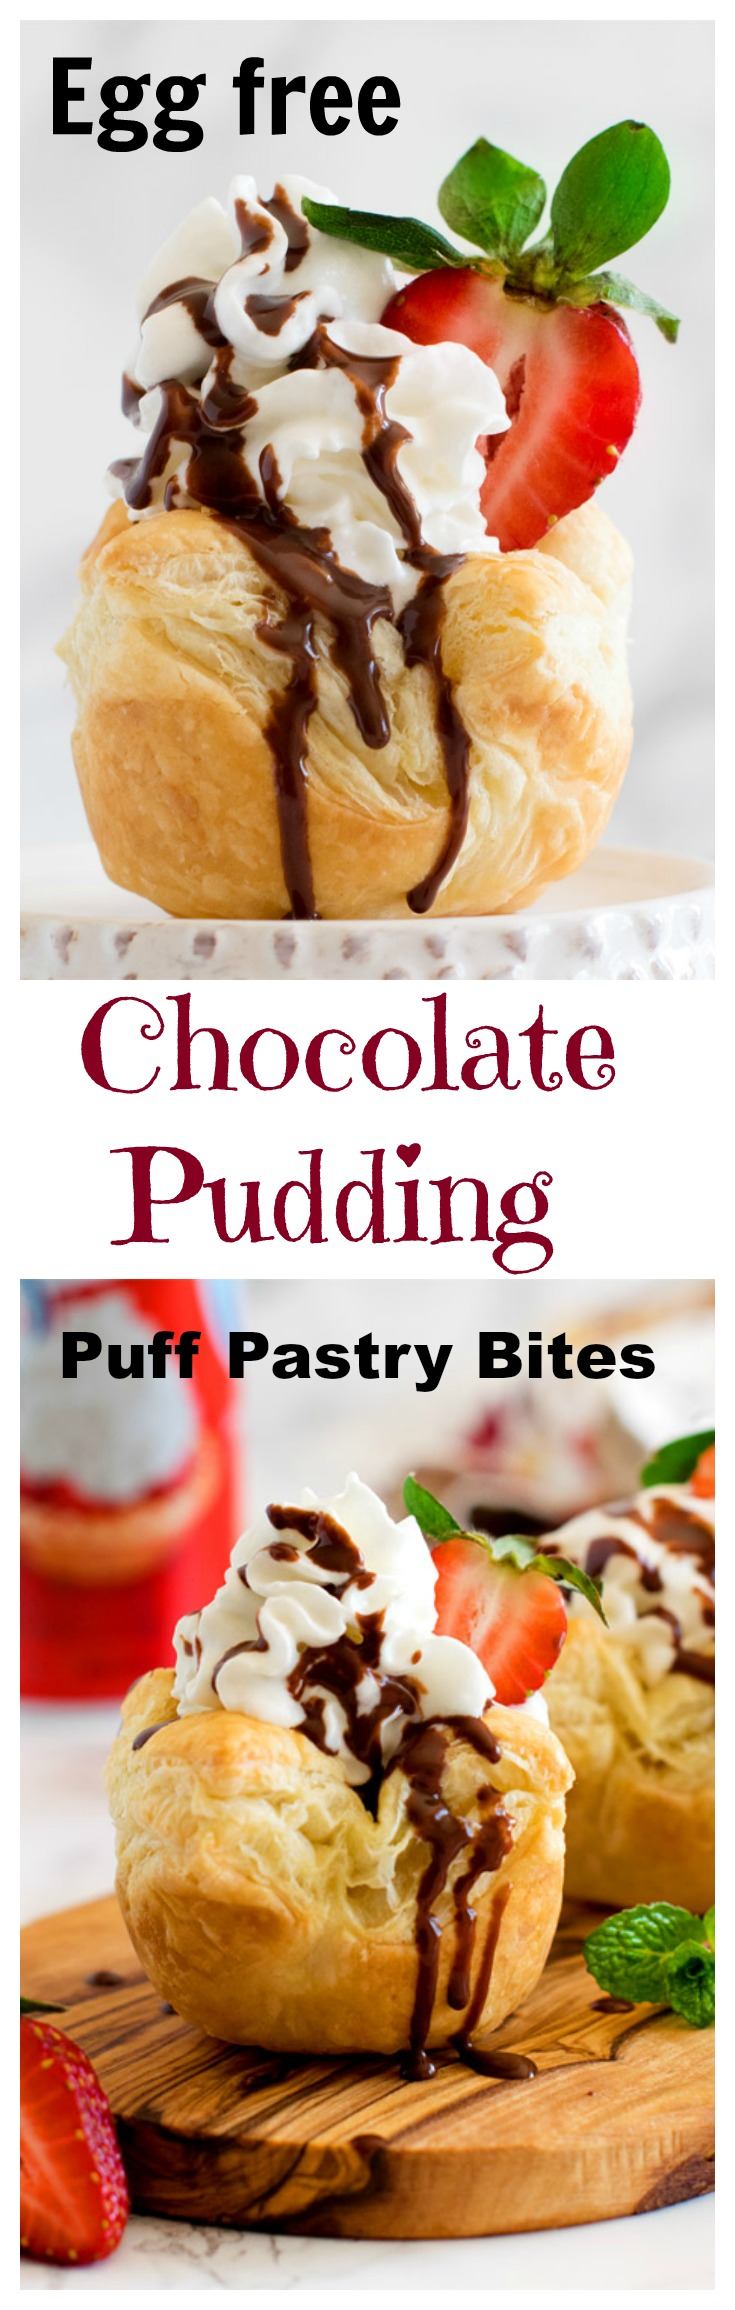 Egg free chocolate pudding puff pastry bites